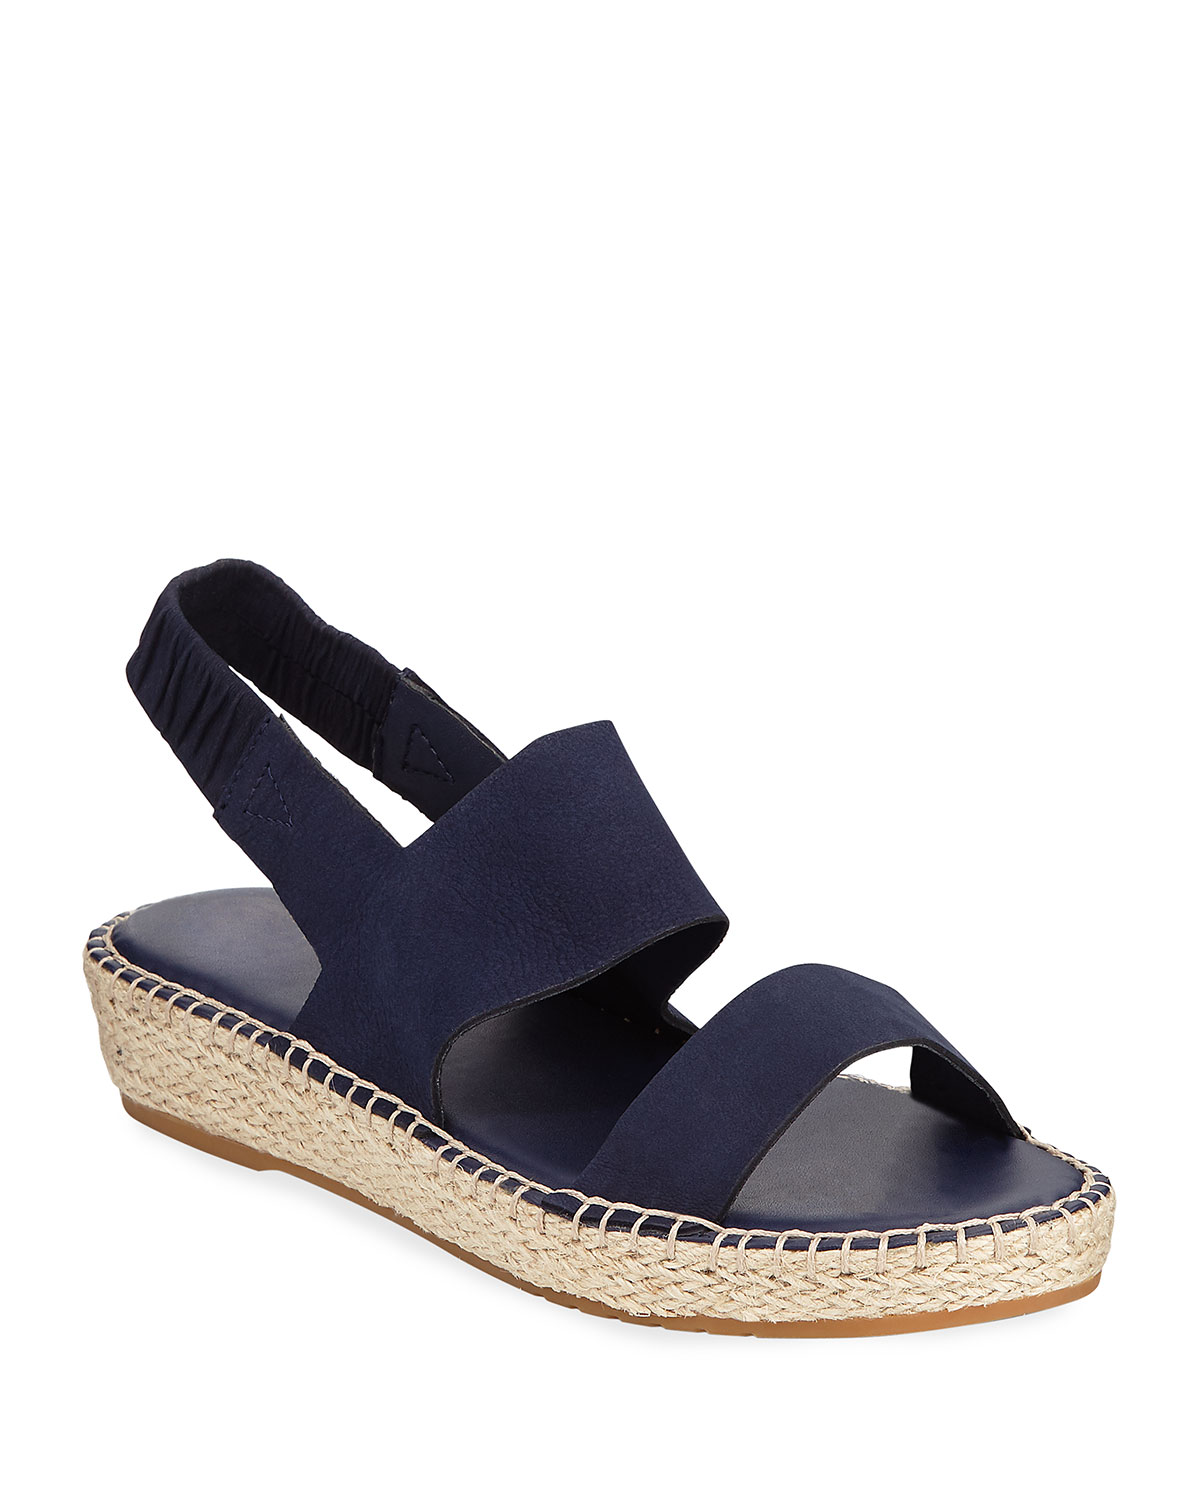 CloudFeel Leather Espadrille Sandals, Navy